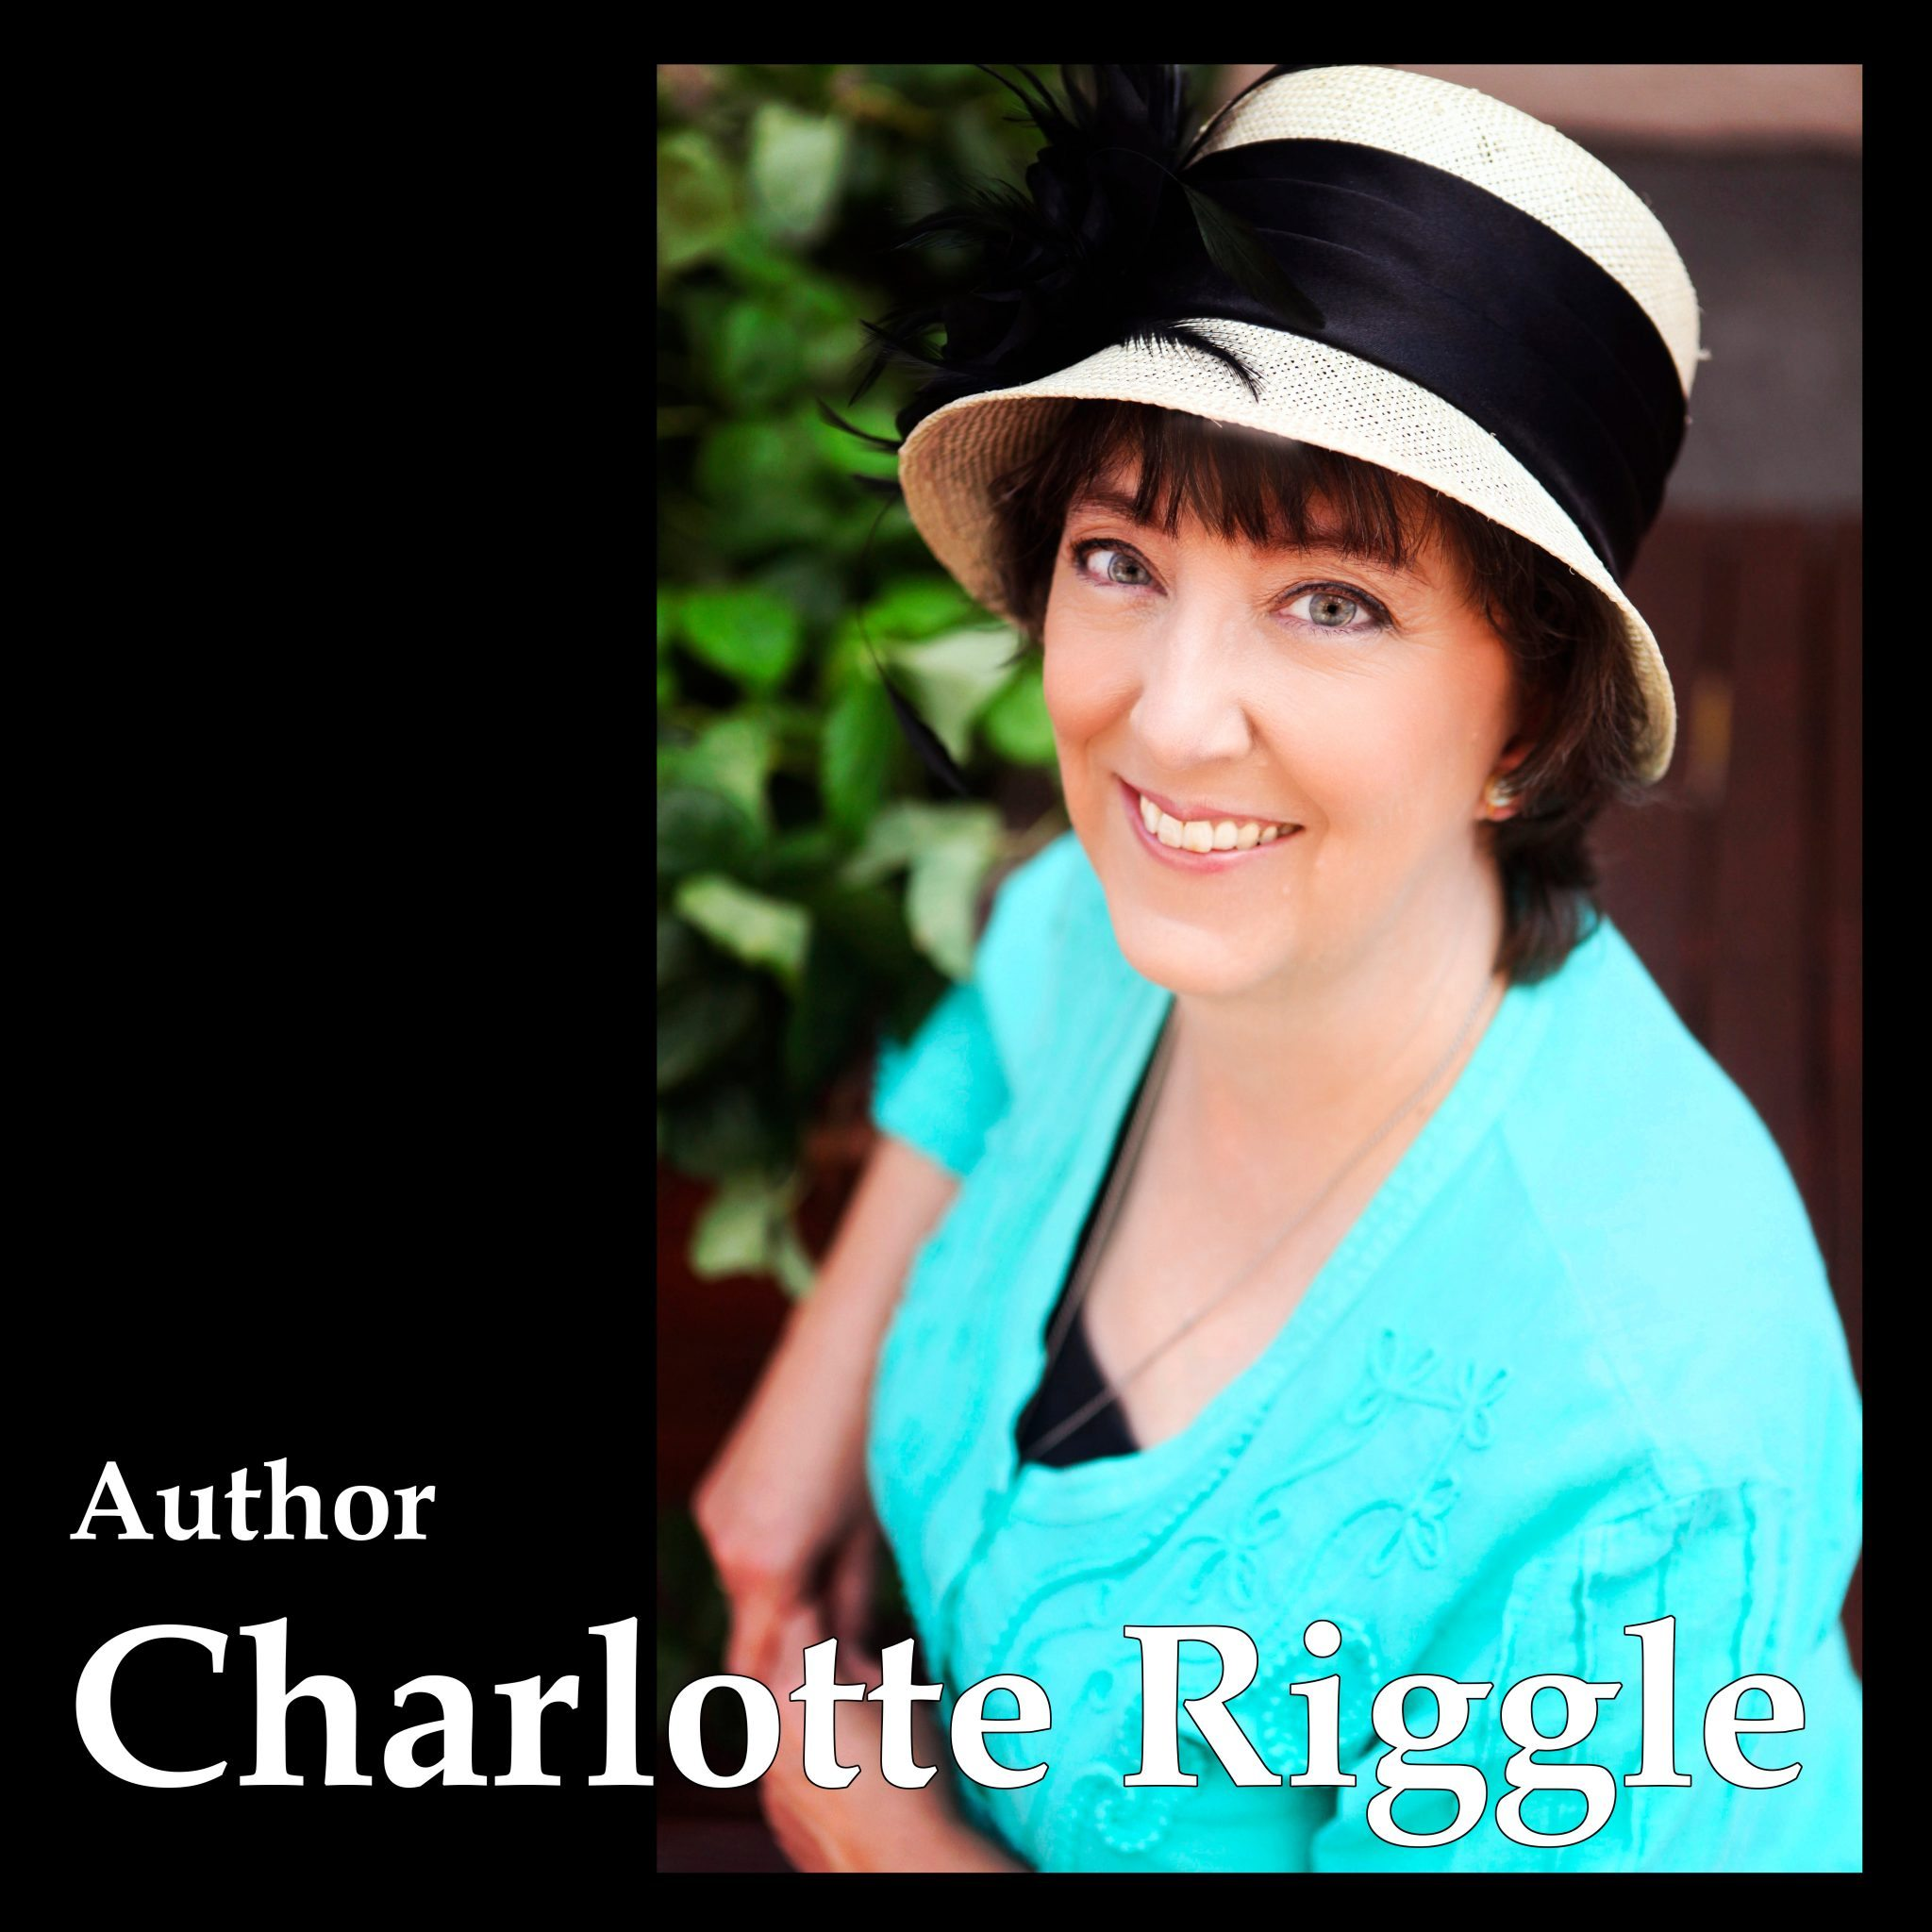 Author Charlotte Riggle